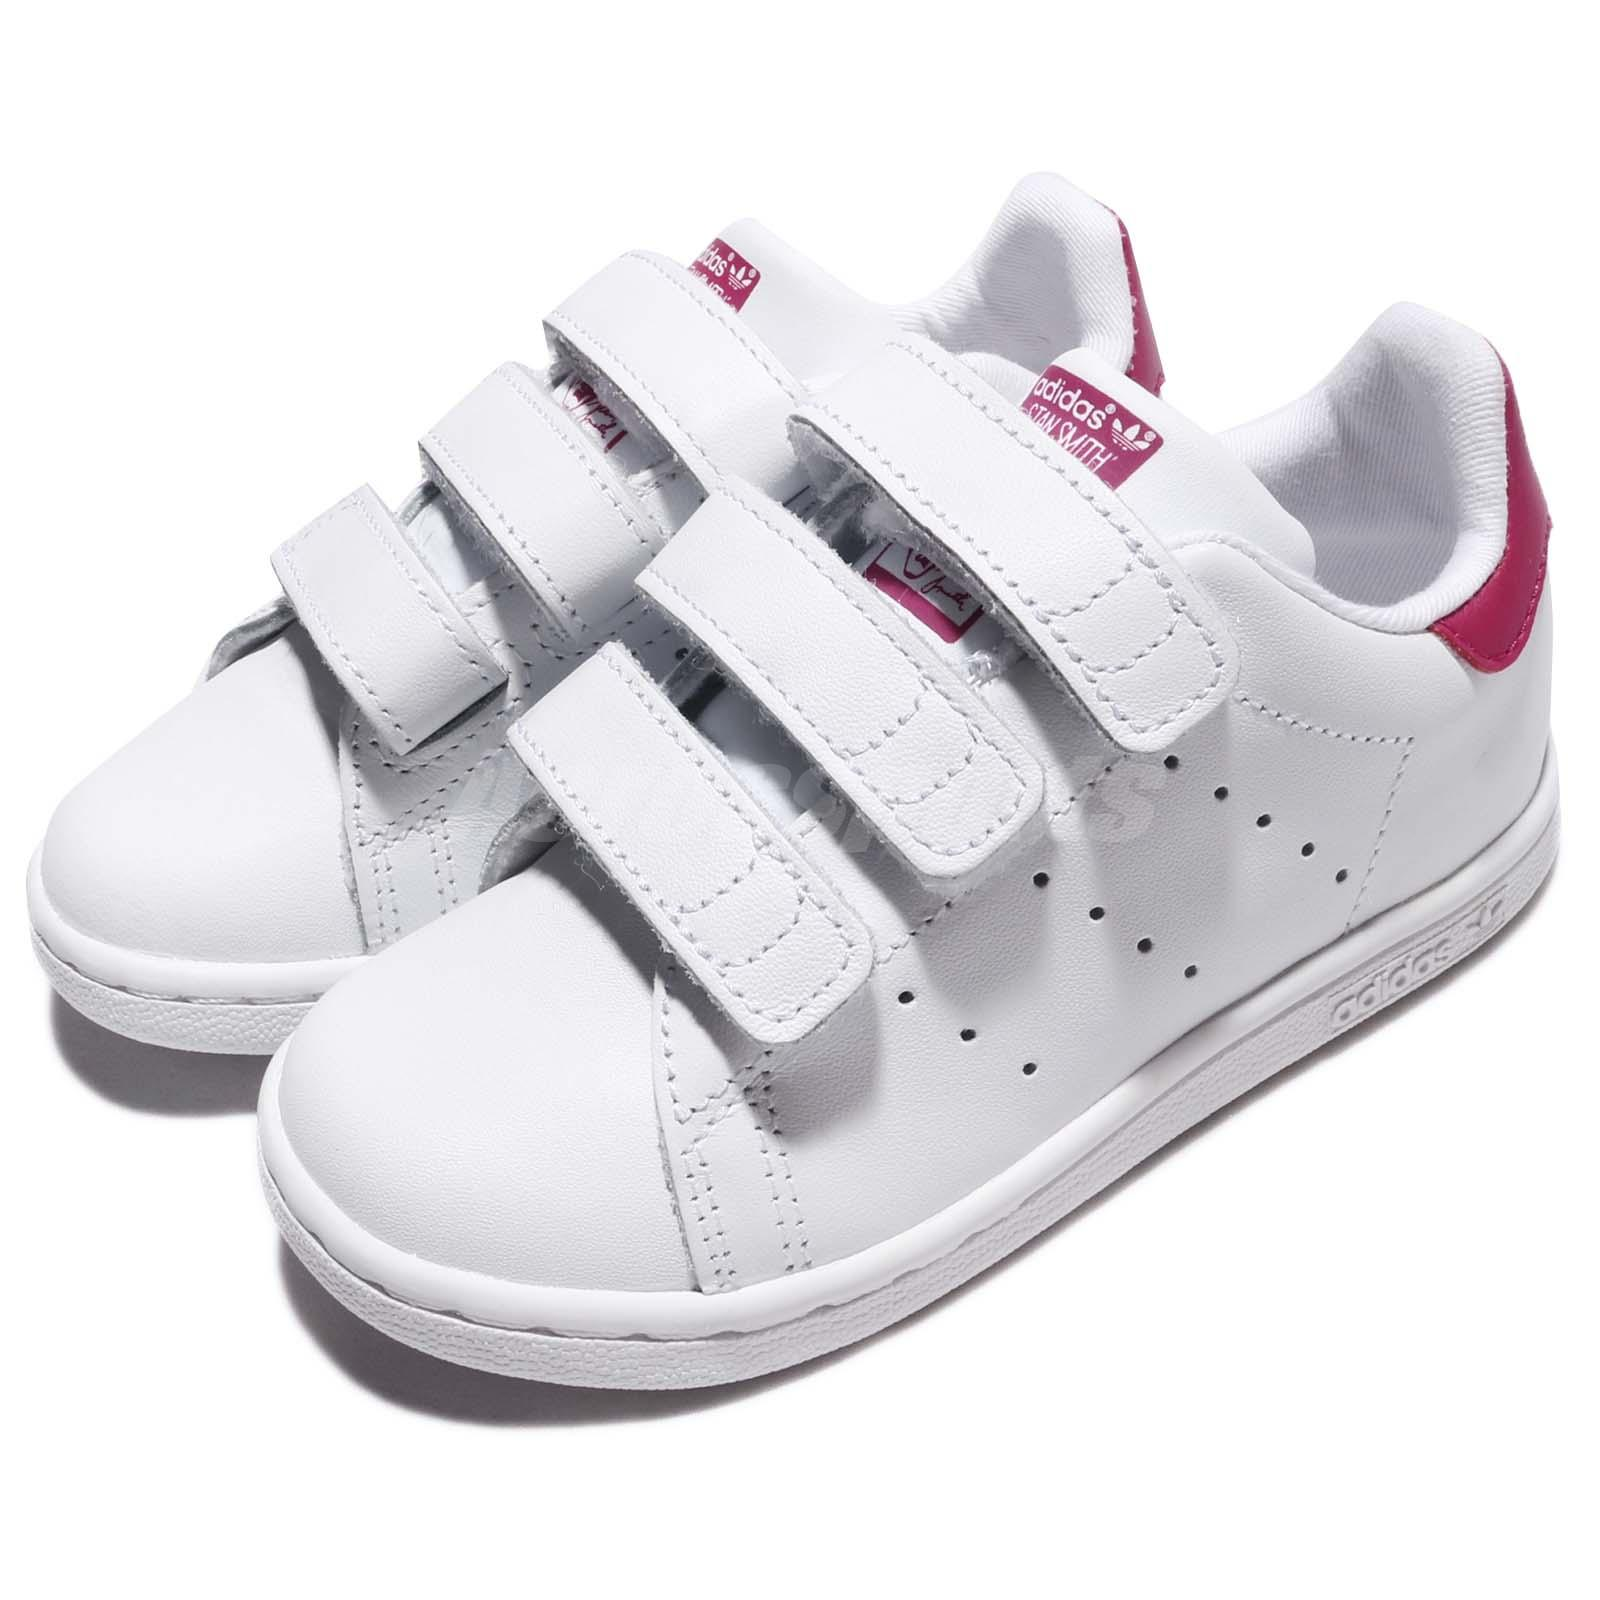 new style 93252 88e53 Details about adidas Stan Smith CF I White Pink Leather Infant Toddler Baby  Shoes BZ0523